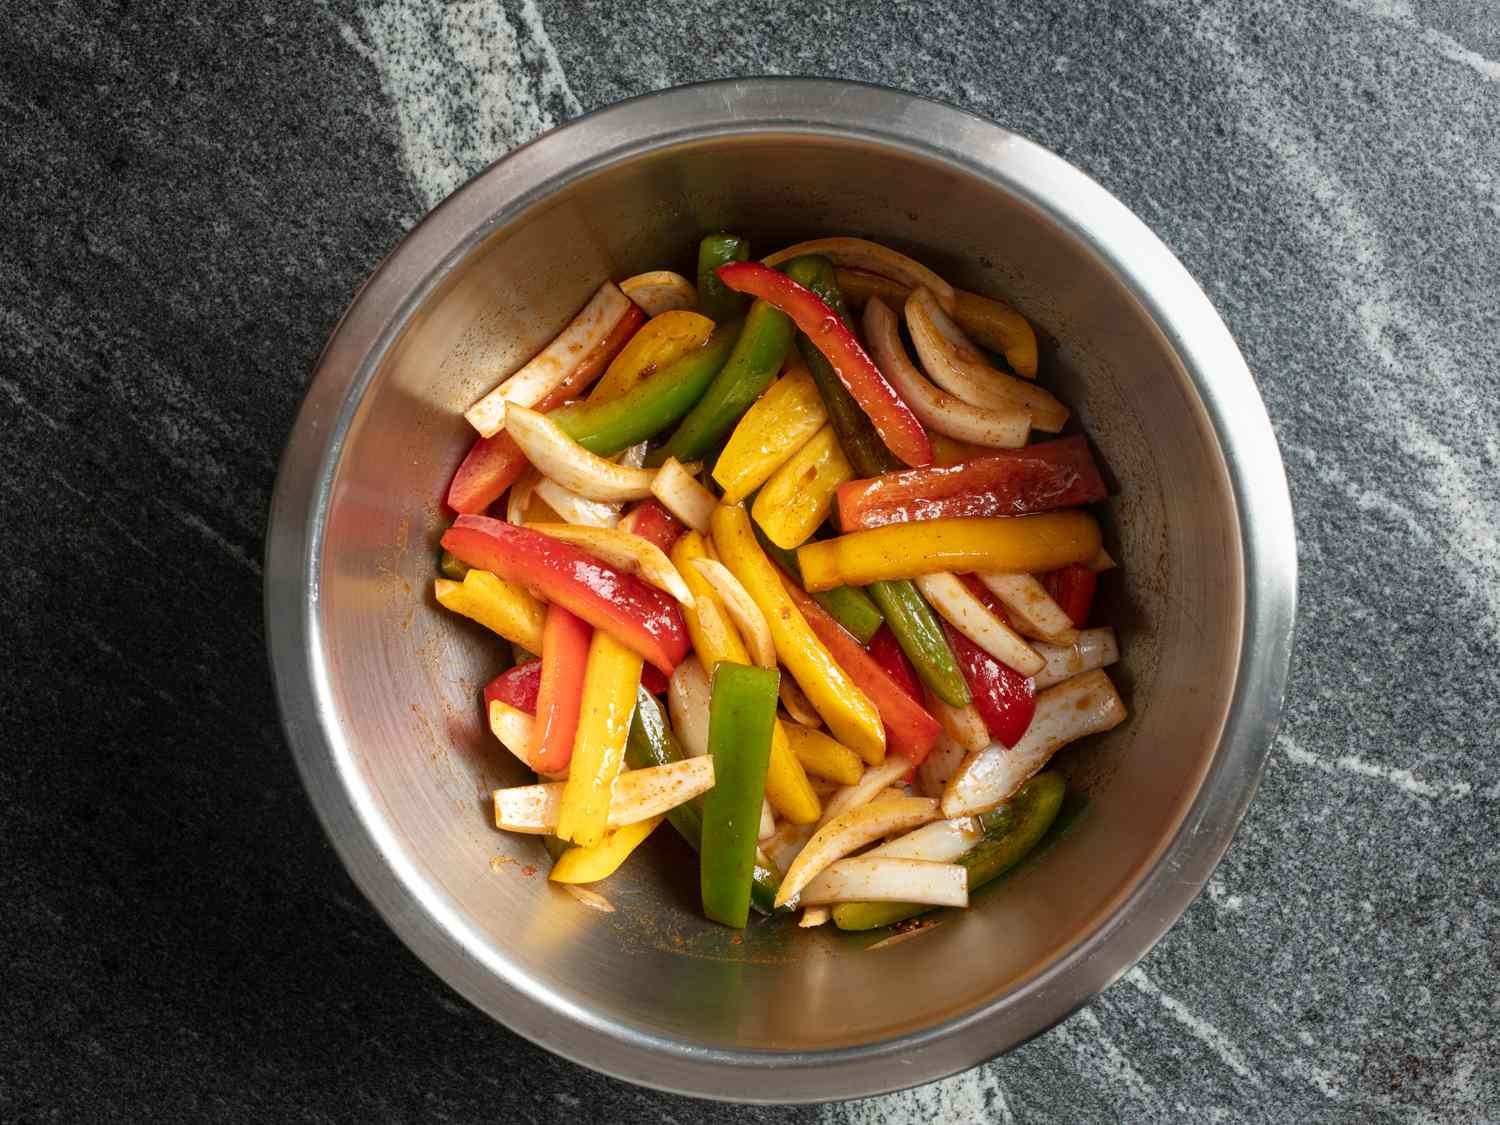 Metal bowl filled with sliced peppers, onions, and fajita marinade.